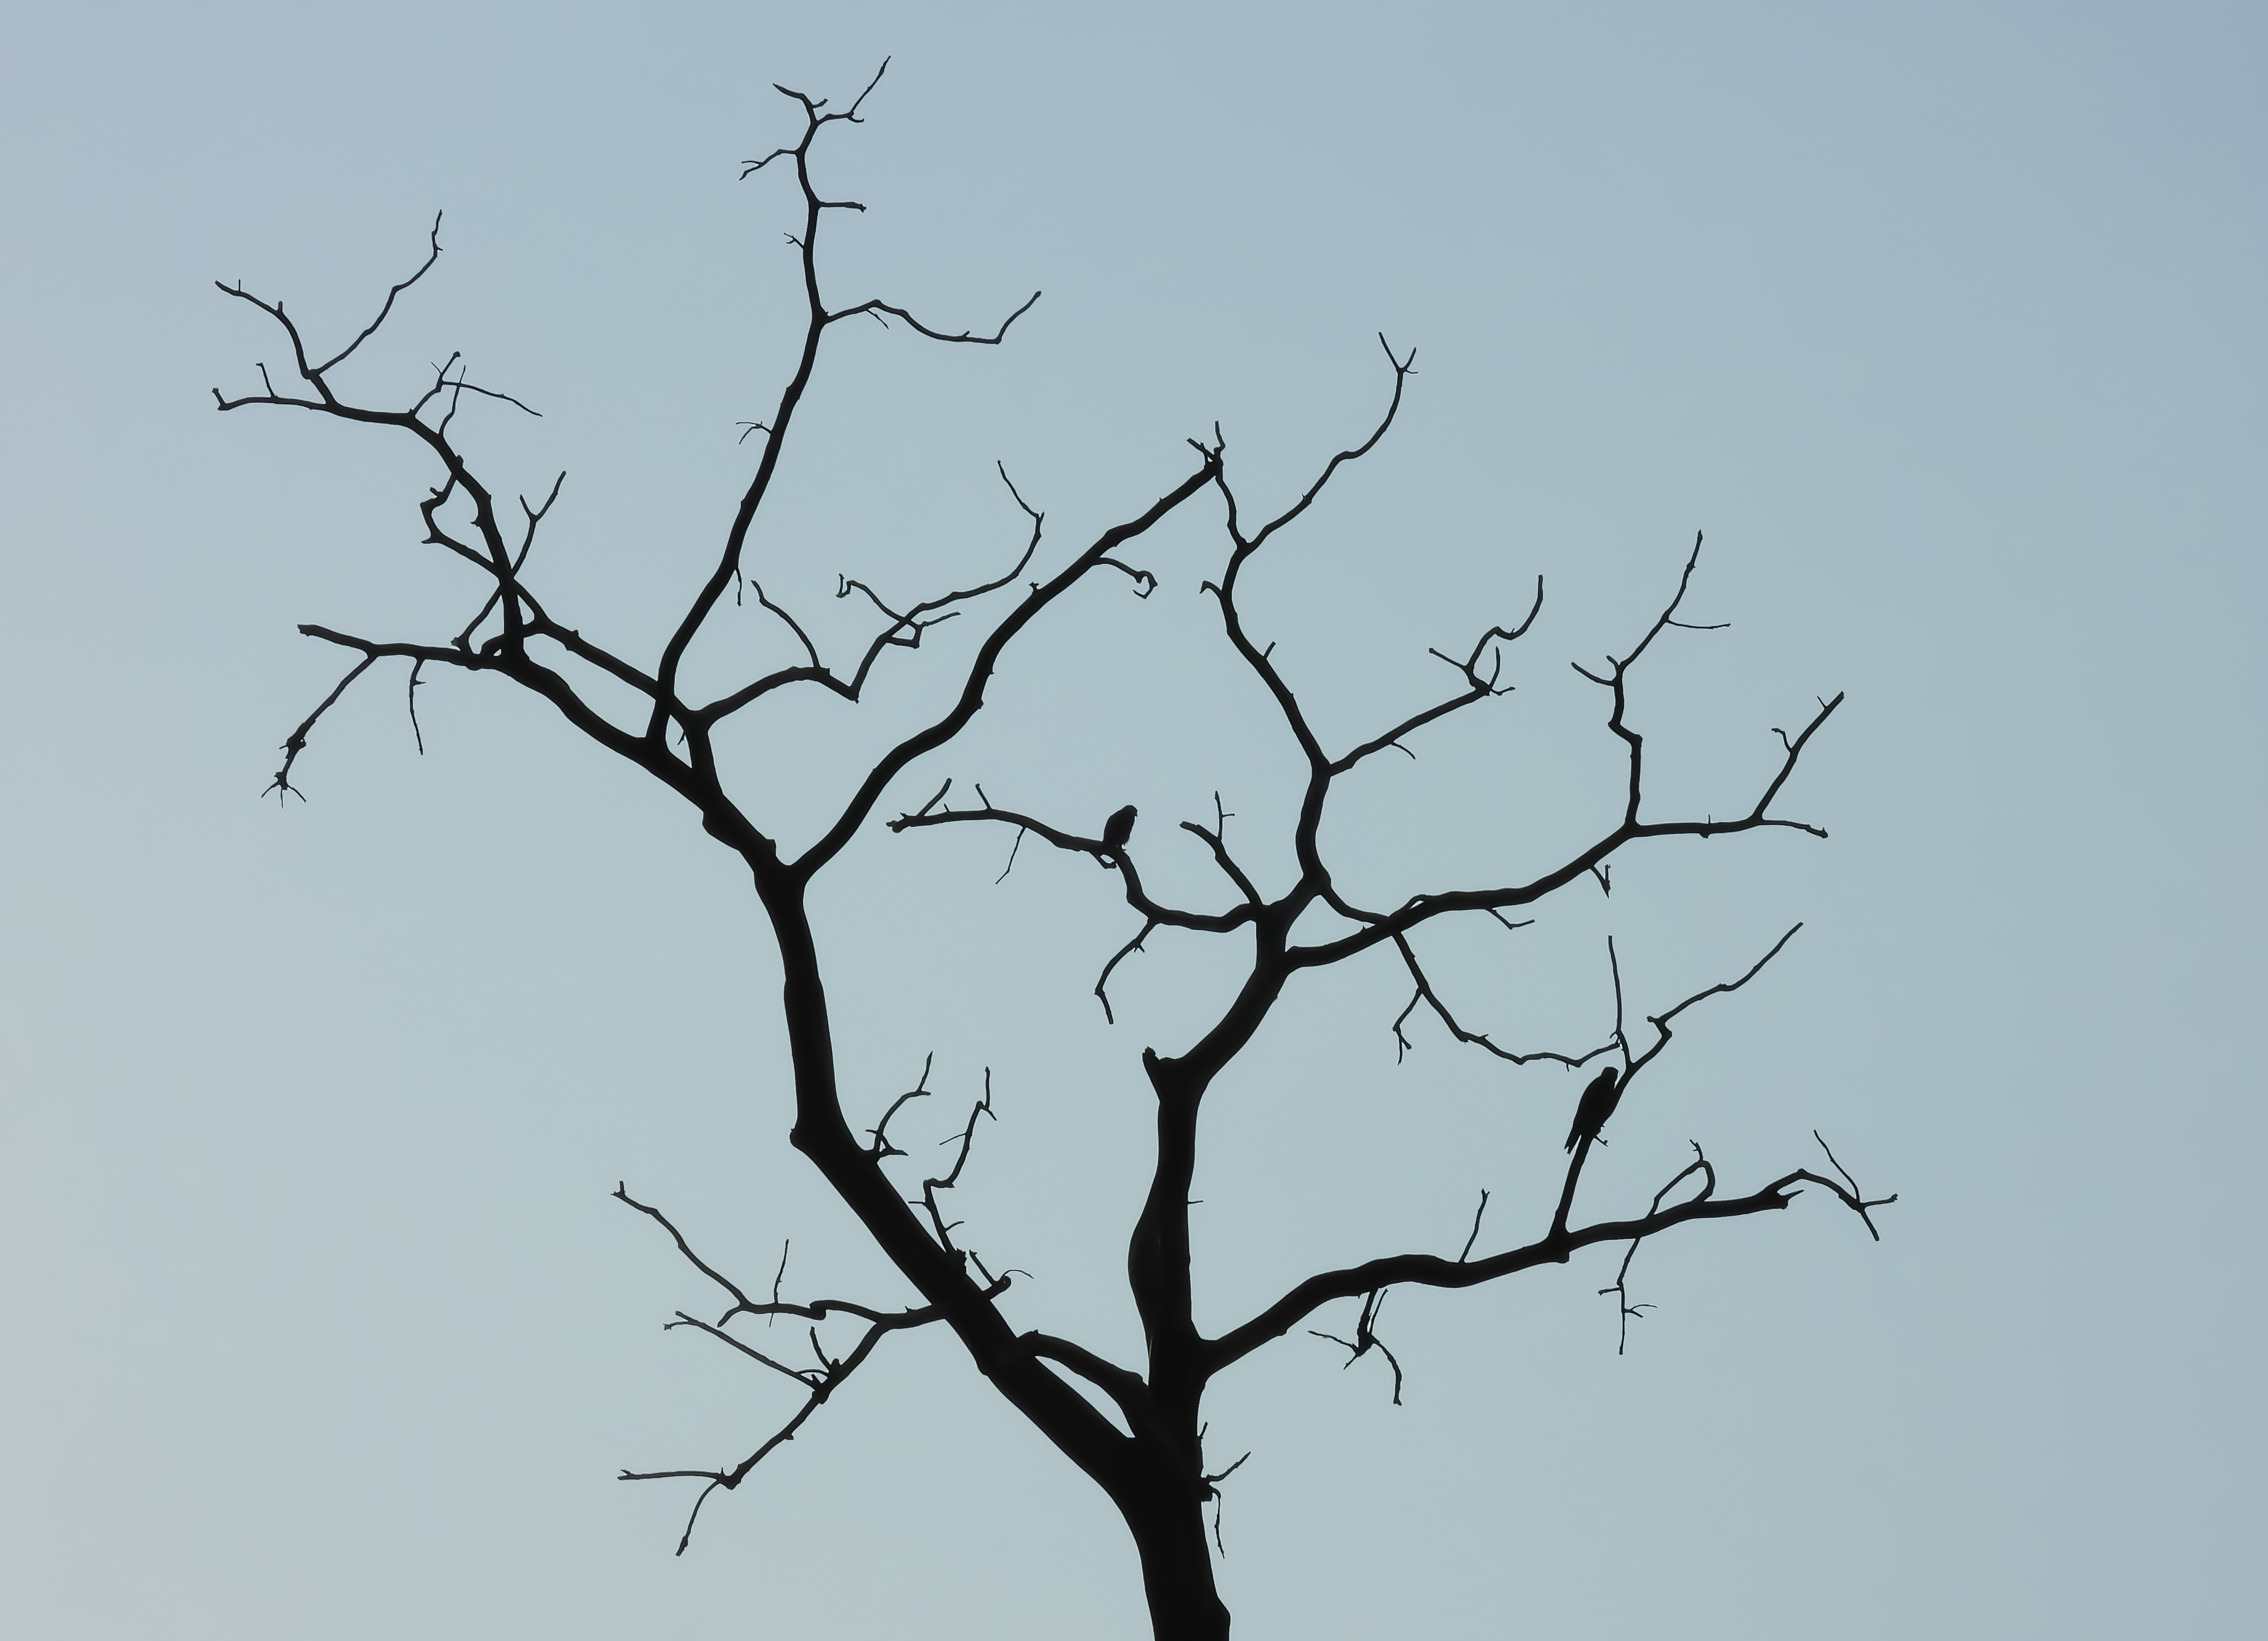 Cooper's Hawks Silhouetted in a Dead Tree